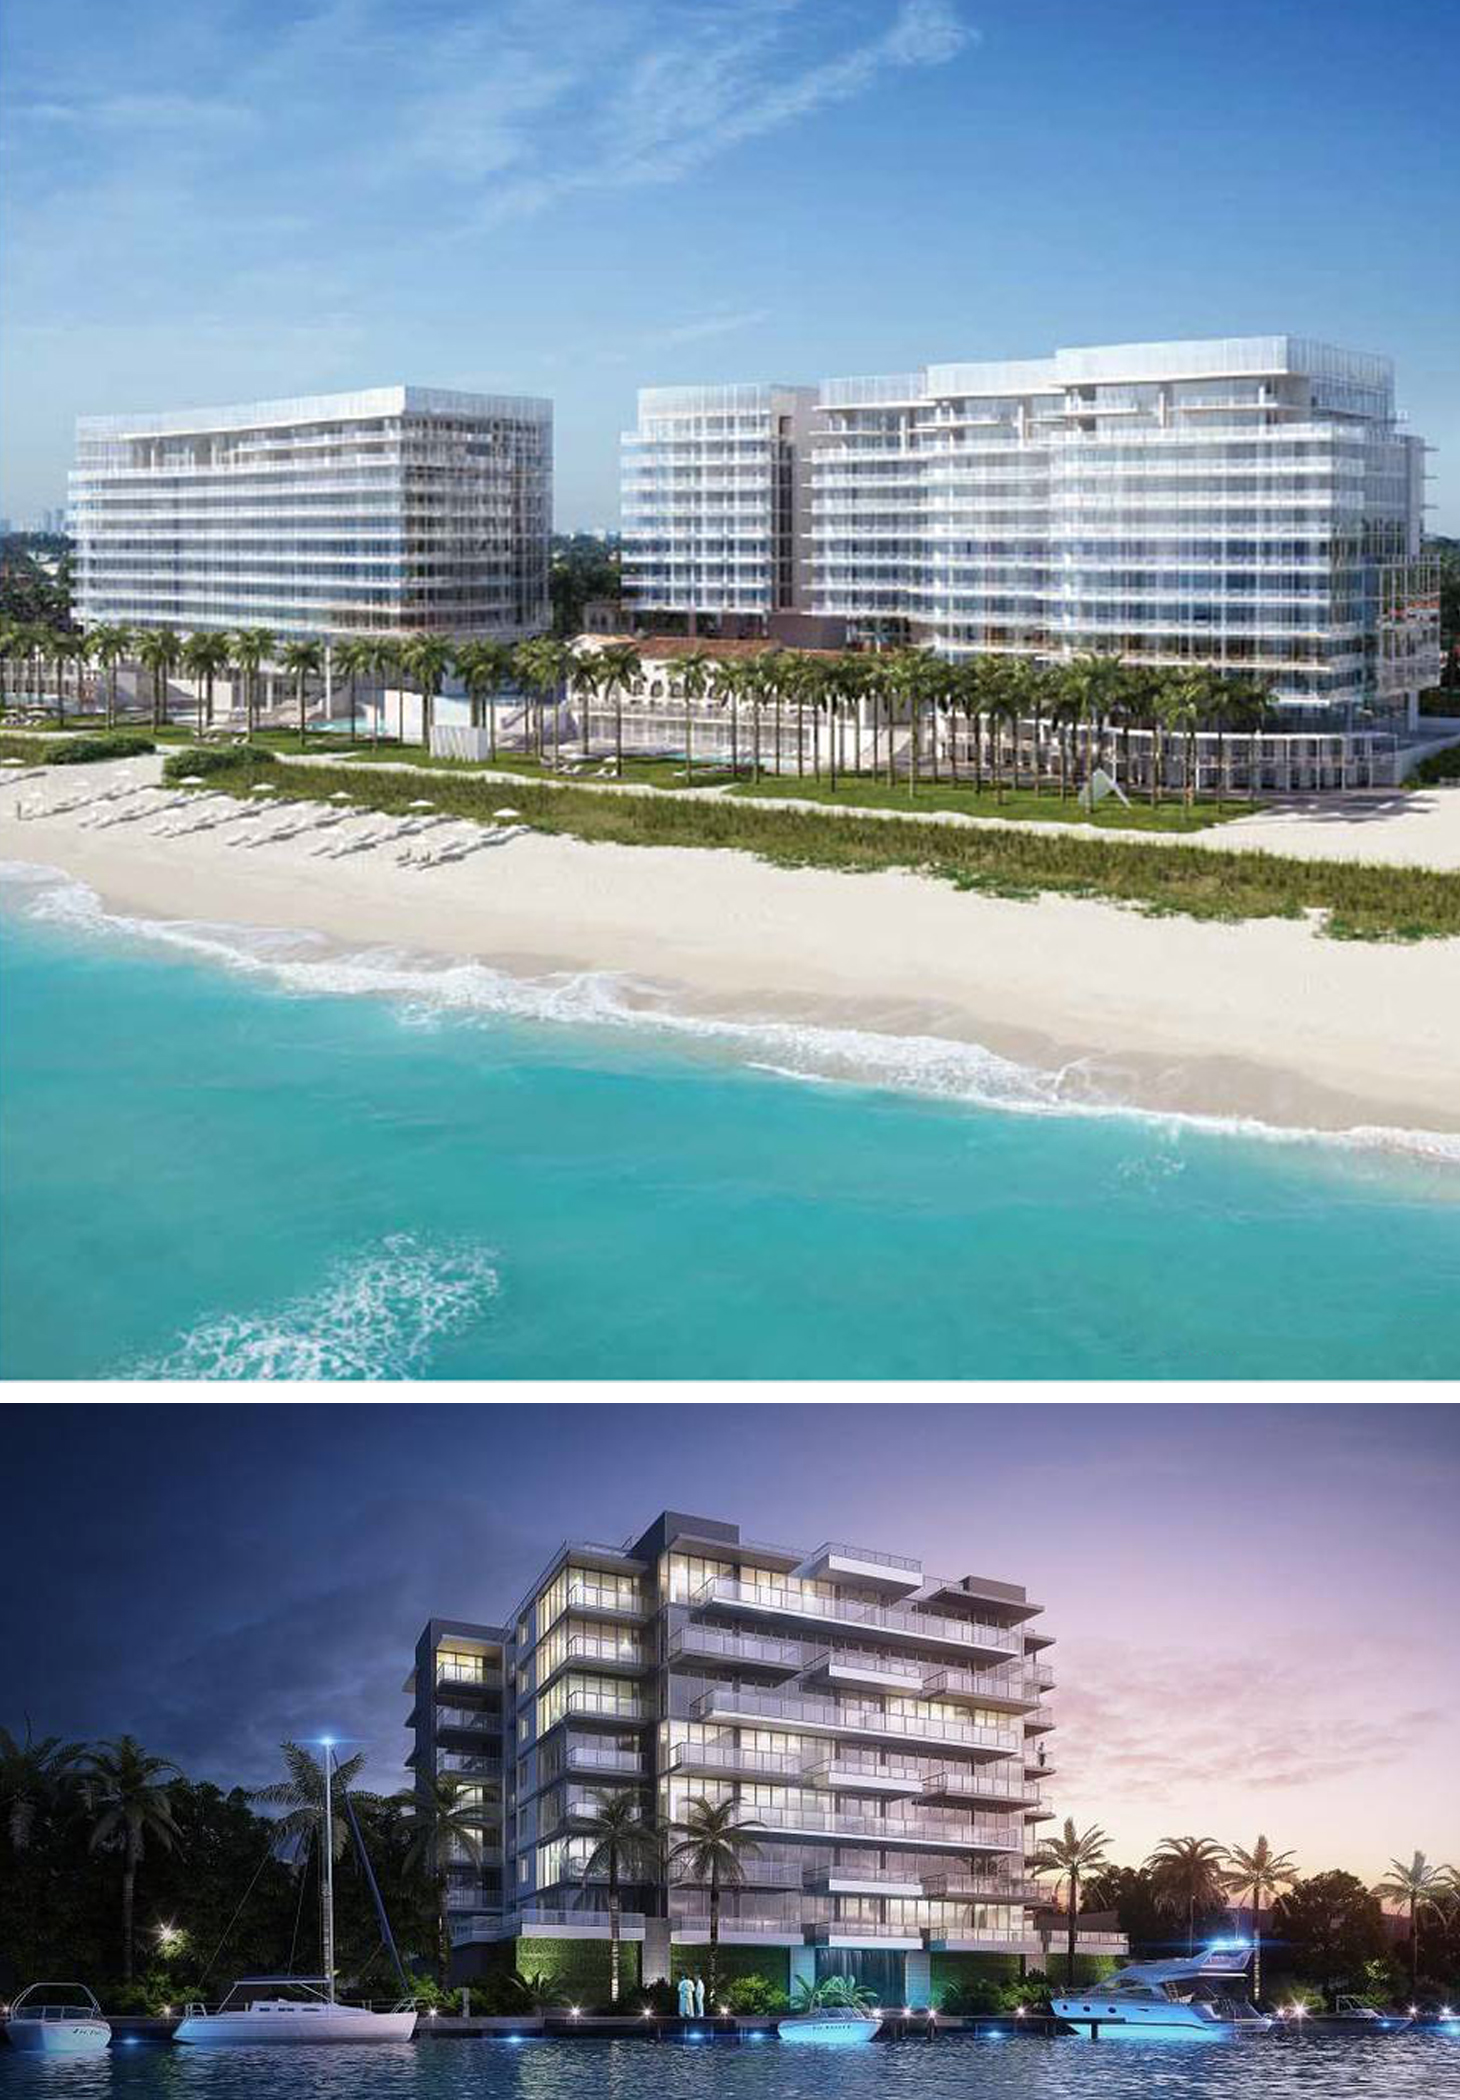 (TOP) The Surf Club Four Seasons Residences include 150 luxury condo residences with one-to-six bedroom units, plus 13 penthouses, ranging in price from $3.8 million to $40 million; design by Richard Meier (Rendering: Courtesy of Fort Capital)    (BOTTOM) Bijou Bay Harbor is a nine-story,41-unit, full-service boutique luxury condo,situated on the Intracoastal Waterway (adjacent to Bal Harbour).(Rendering: Courtesy of U.S.Affiliate of Acierto Inmobiliario-Juan Carlos Gonzalez)